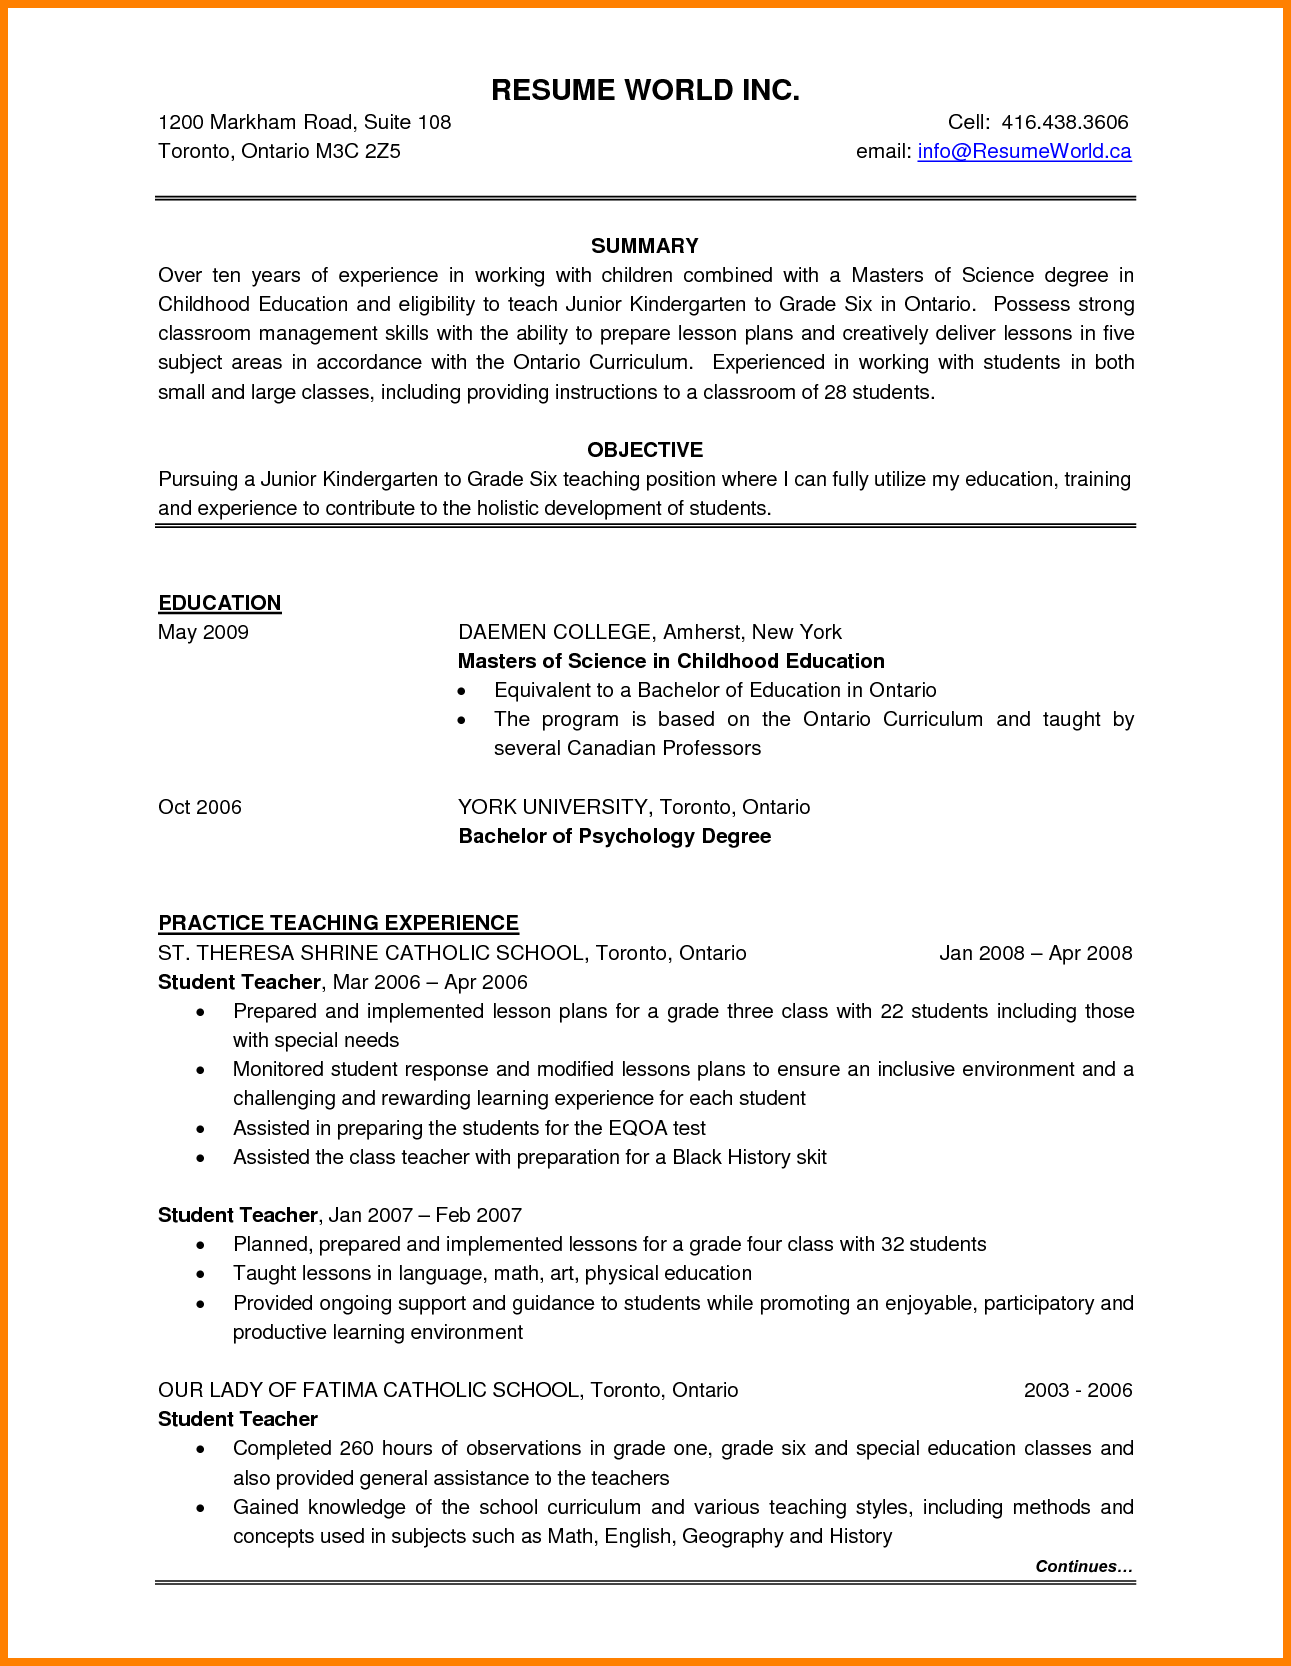 Free Resume Templates Ontario | Free Resume Templates | Pinterest ...